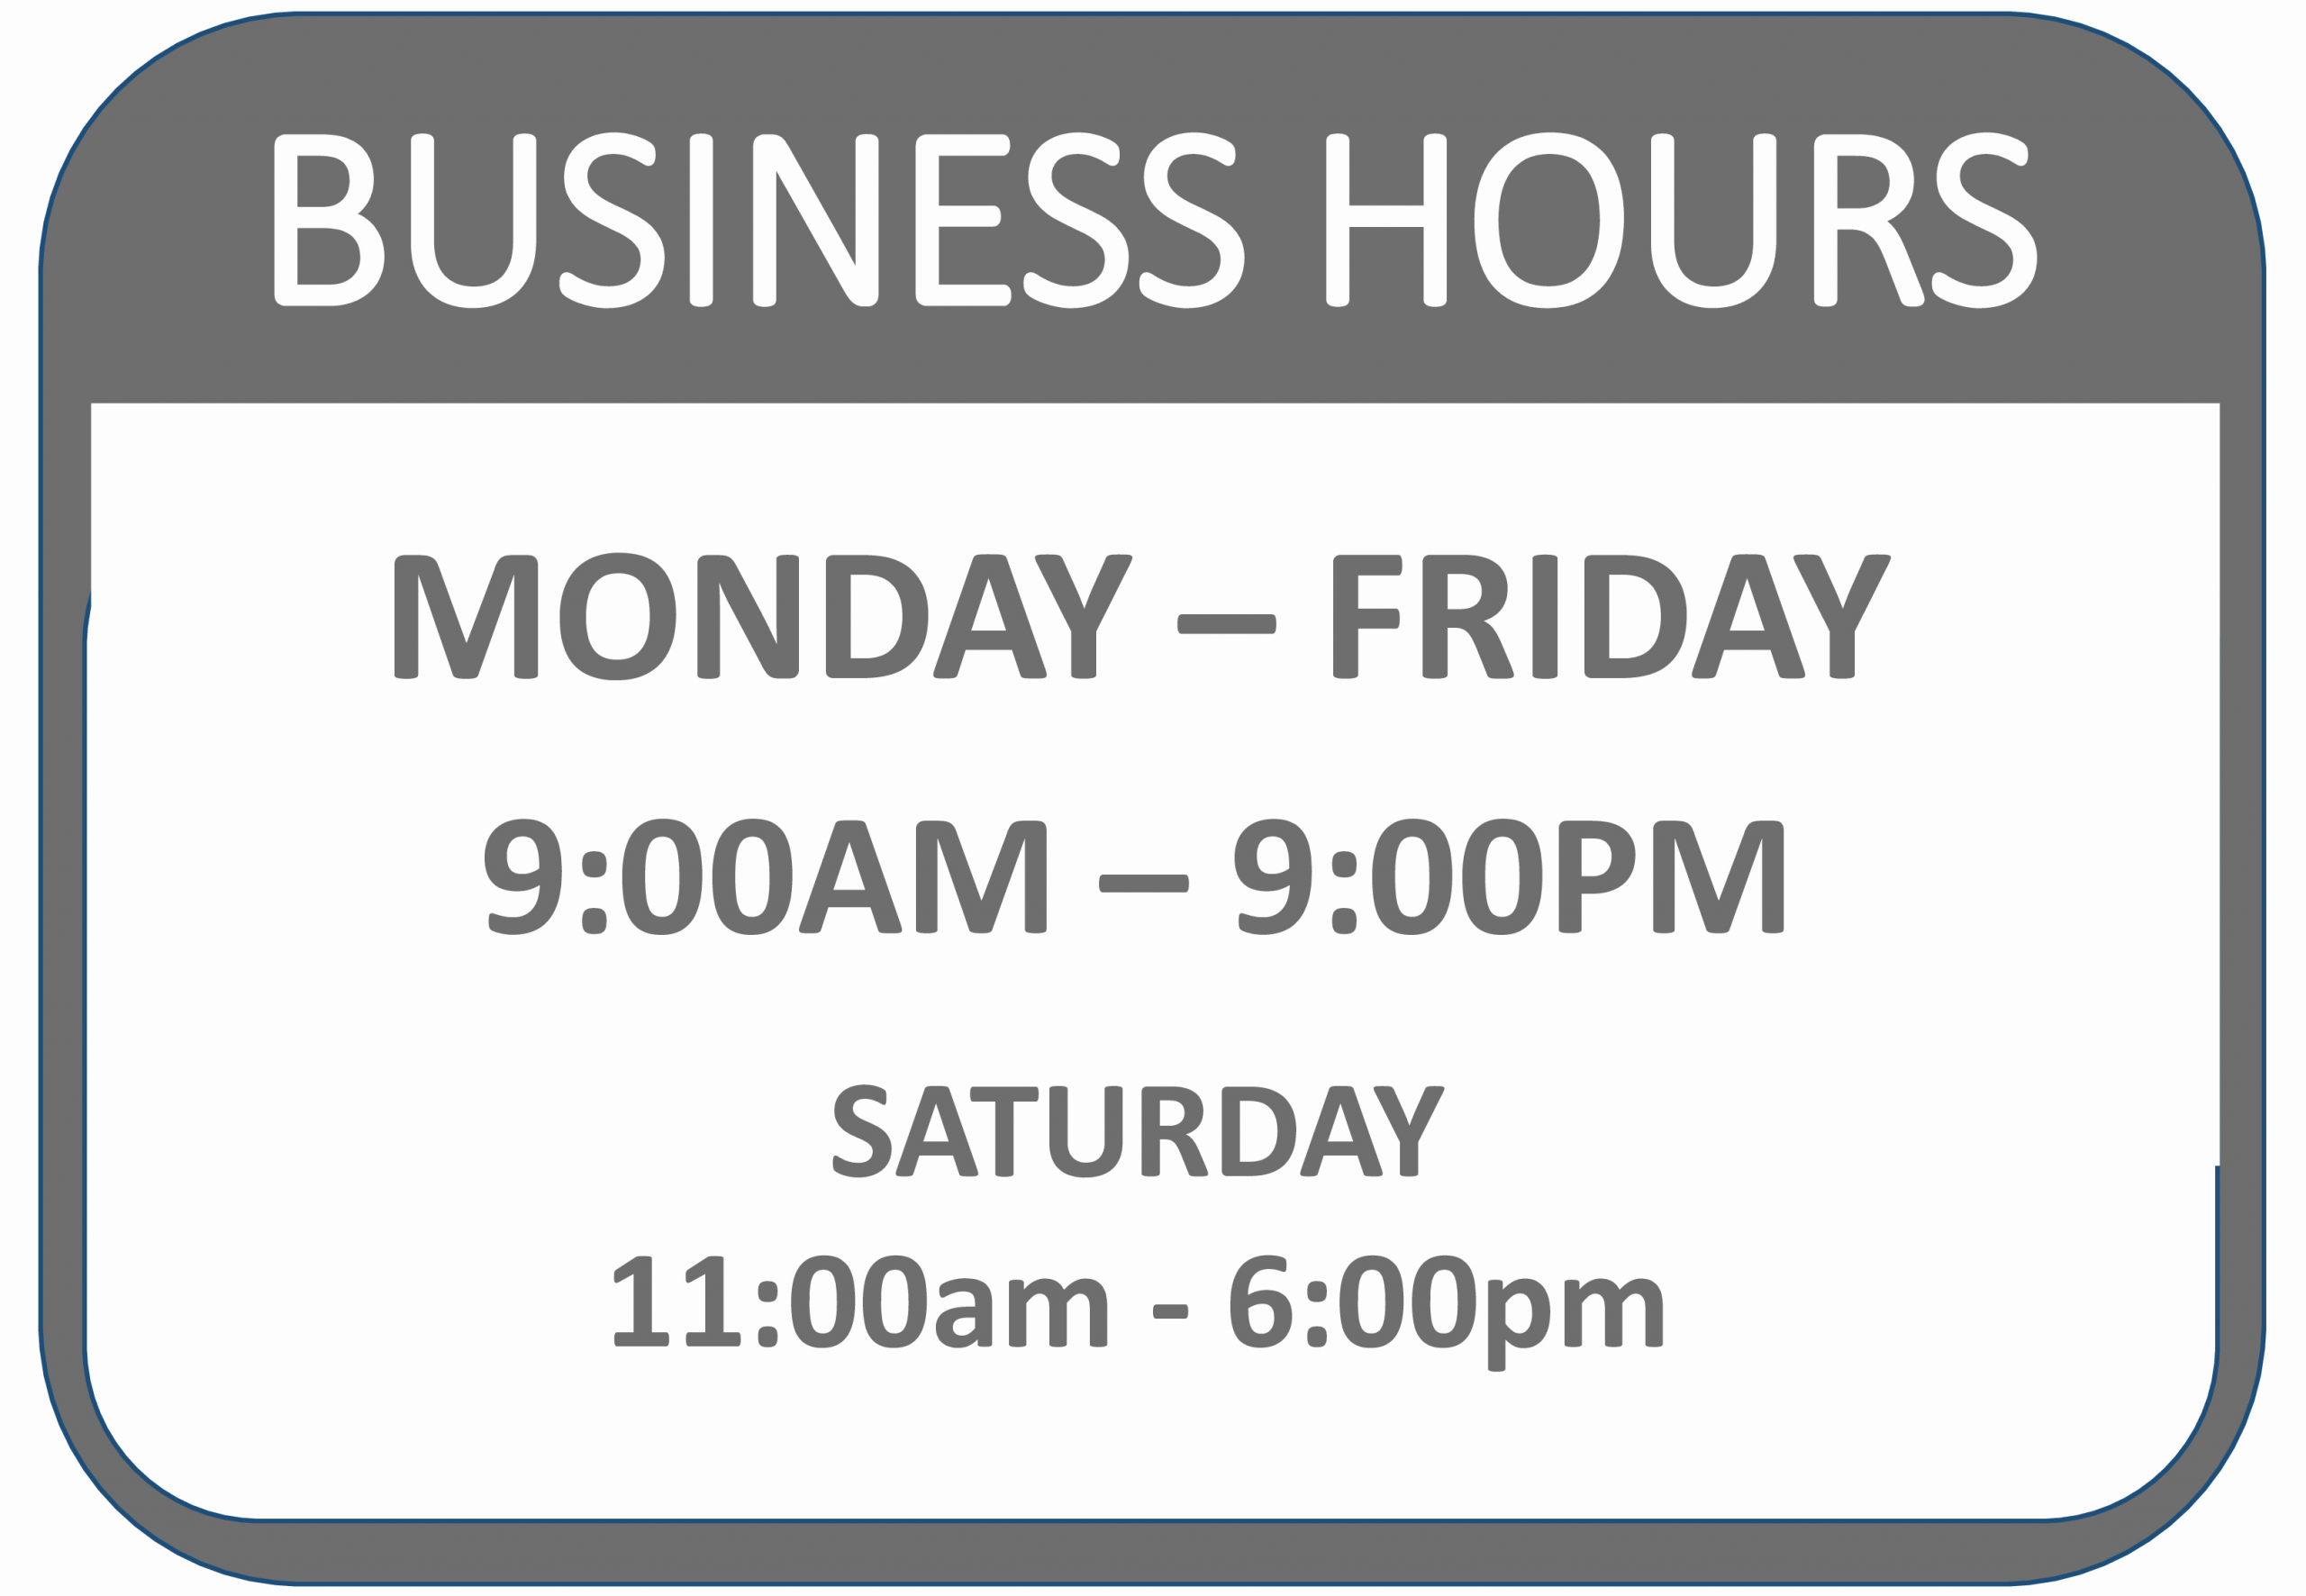 Hours Of Operation Template Microsoft Word Awesome Business Hours Sign Template Business Hours Template Word